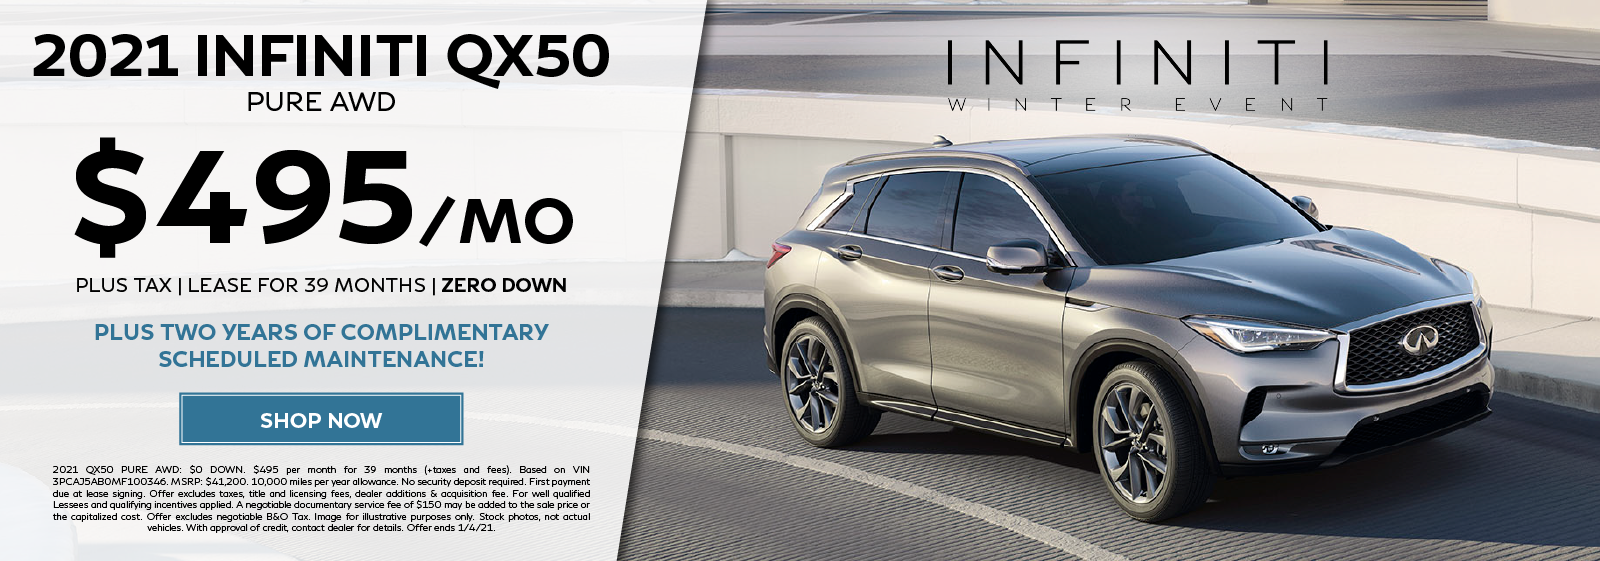 Lease a new 2021 QX50 PURE AWD for $495 per month for 39 months plus get two years of complimentary scheduled maintenance. Click to shop now.